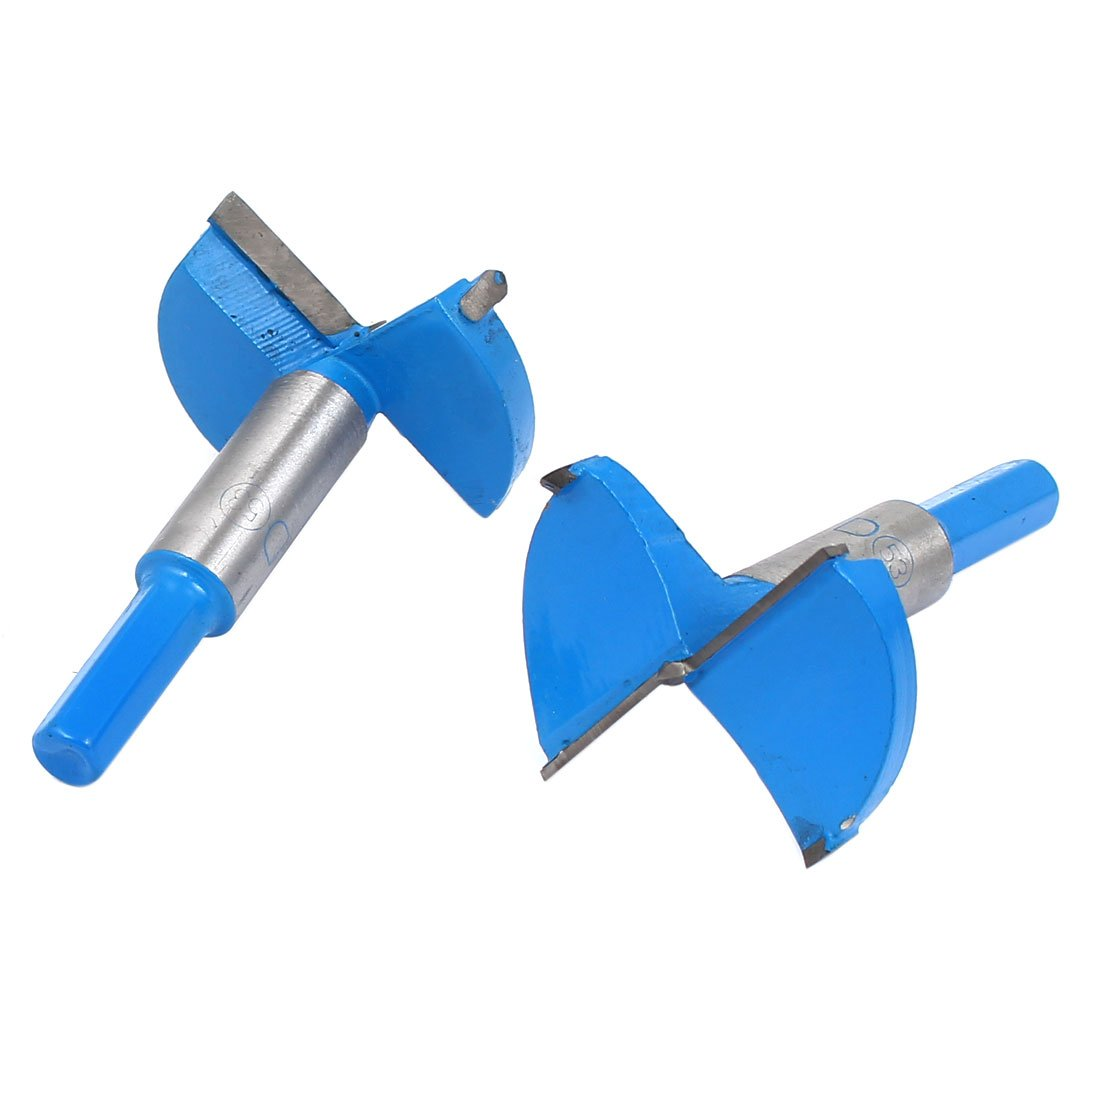 Uxcell a16010500ux0166 53mm Forstner Woodwork Hinge Boring Hole Saw Drill Bit Cutter 2 Pcs,